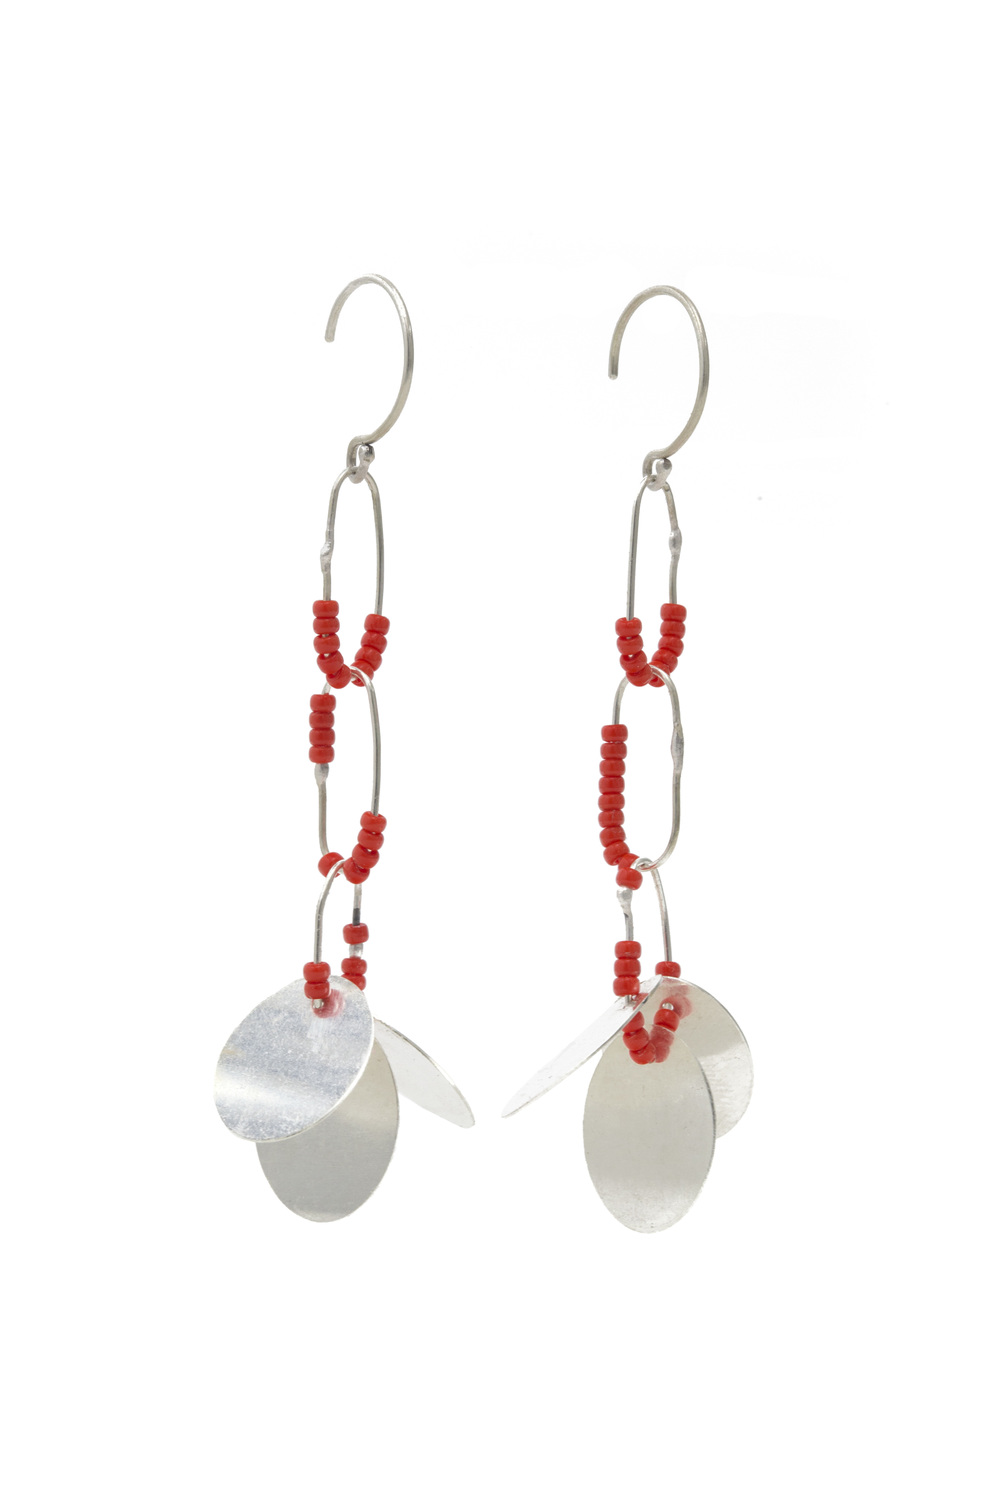 EE15 Bump, Raissa (2512) long sterling silver with silver discs, red glass beads.jpg